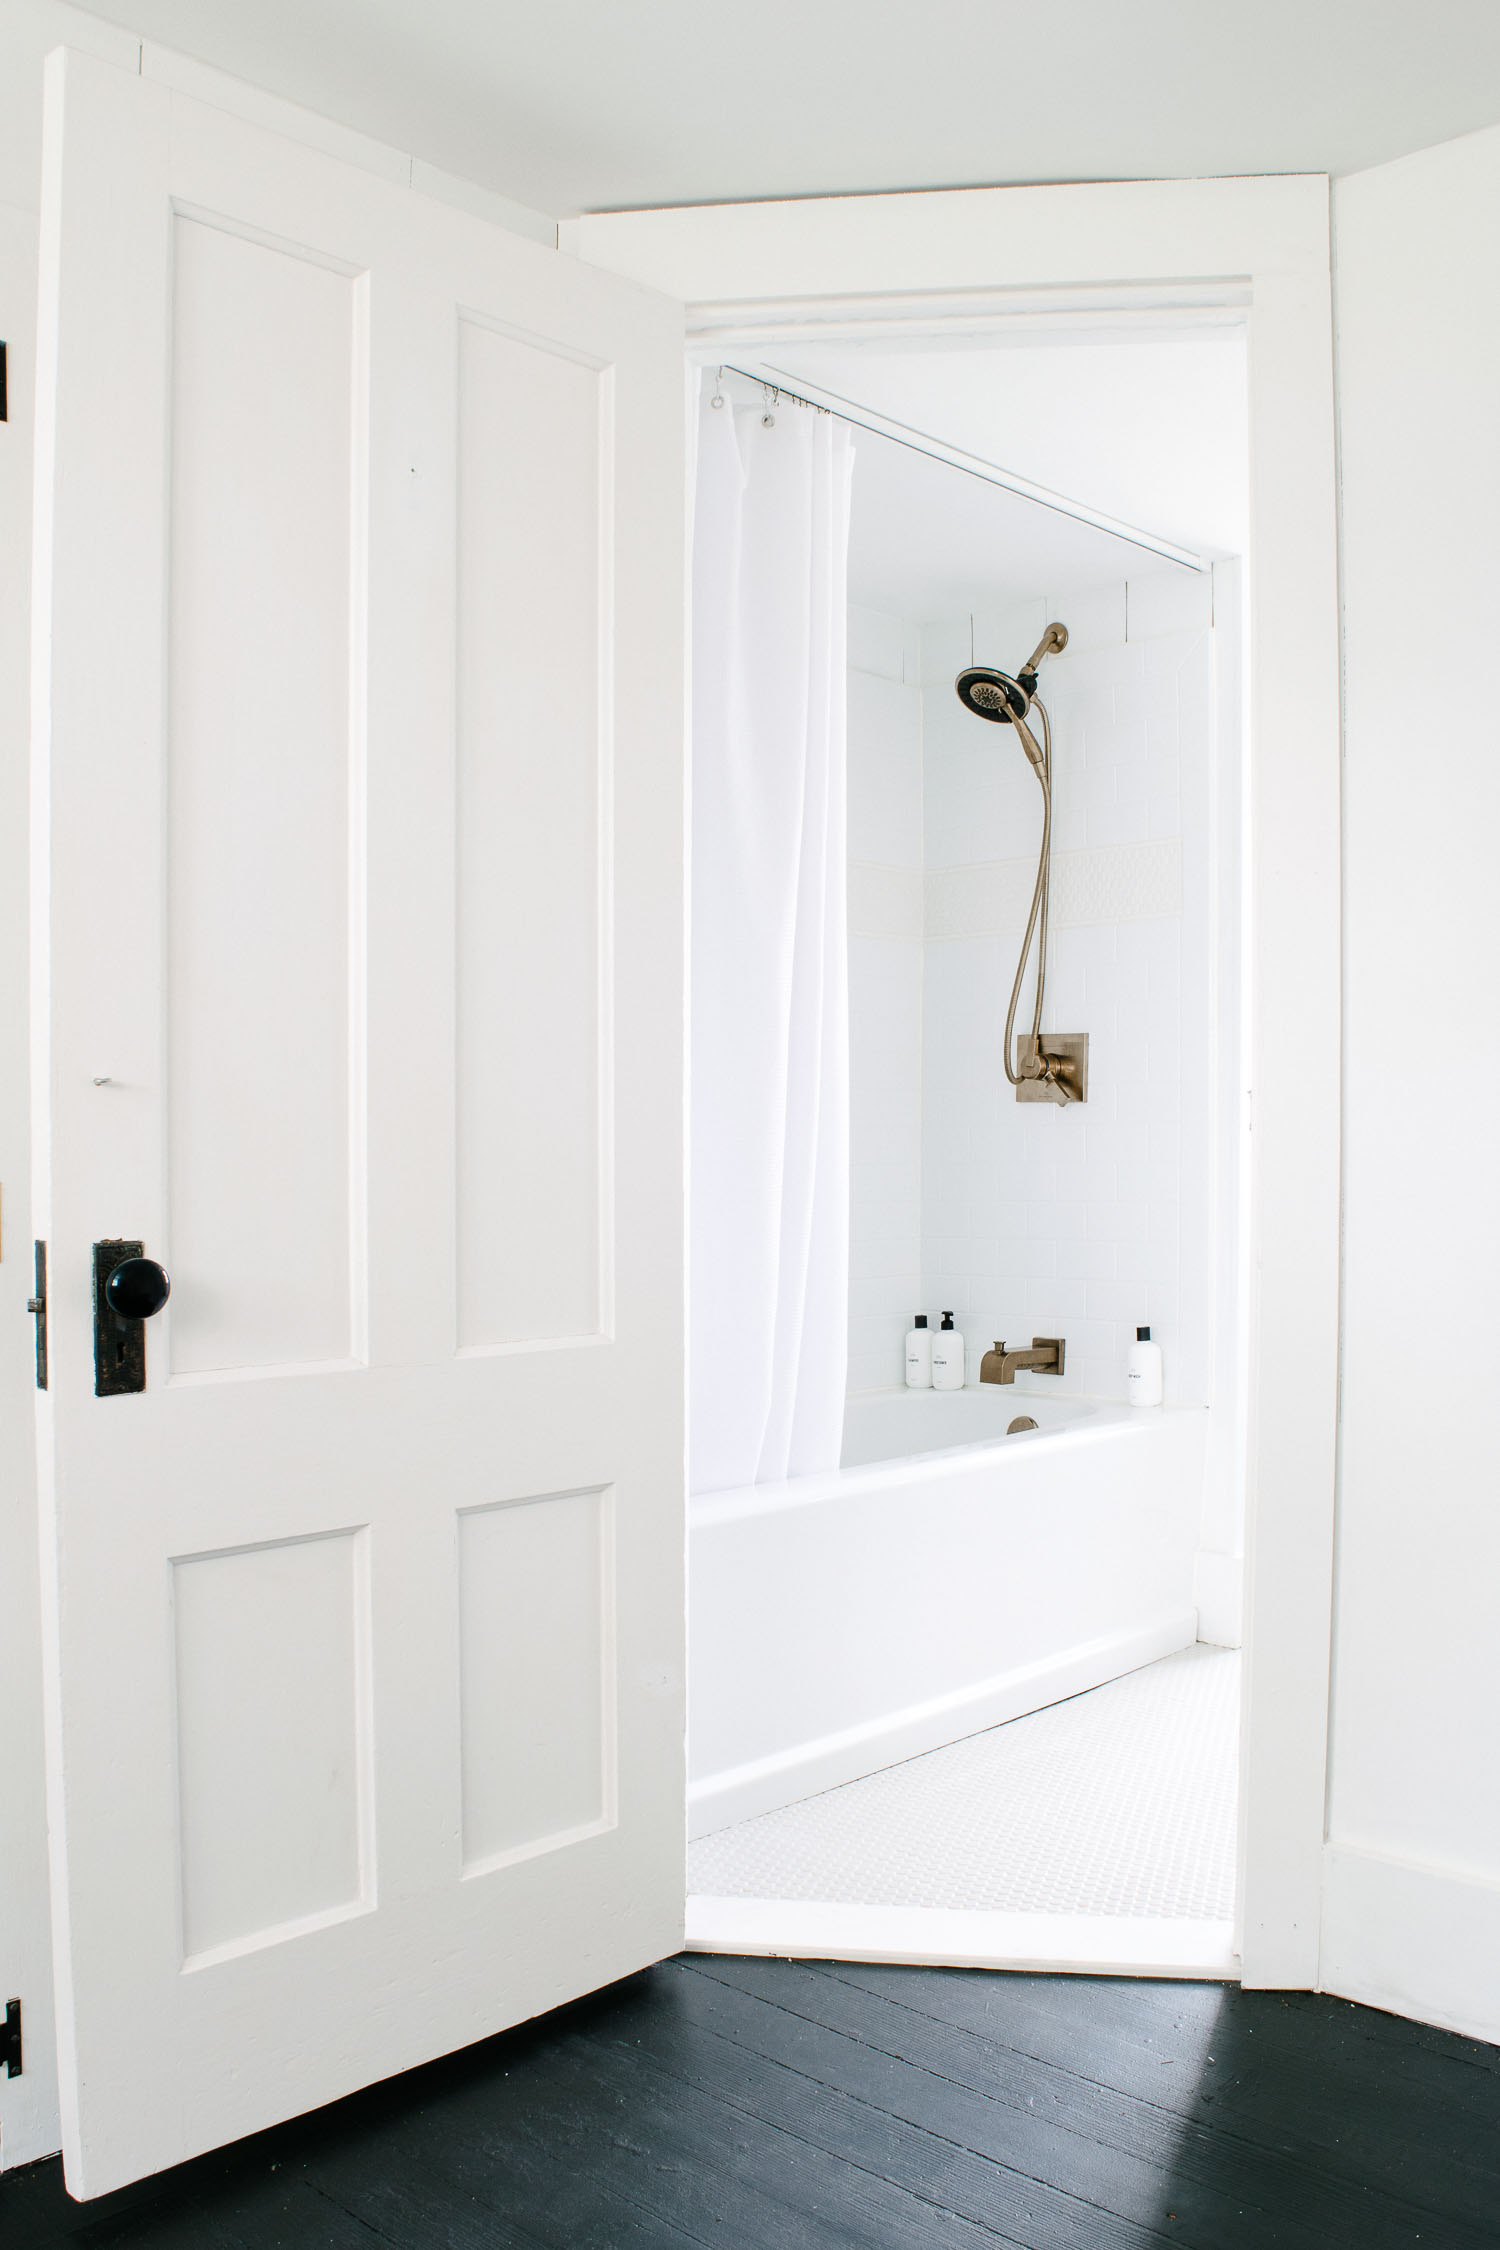 Bright historic bathroom remodel using Delta Upstile Surround, Champagne Brass Faucet and Penny Tile designed by DIY & Home Bloggers This Giant Life.